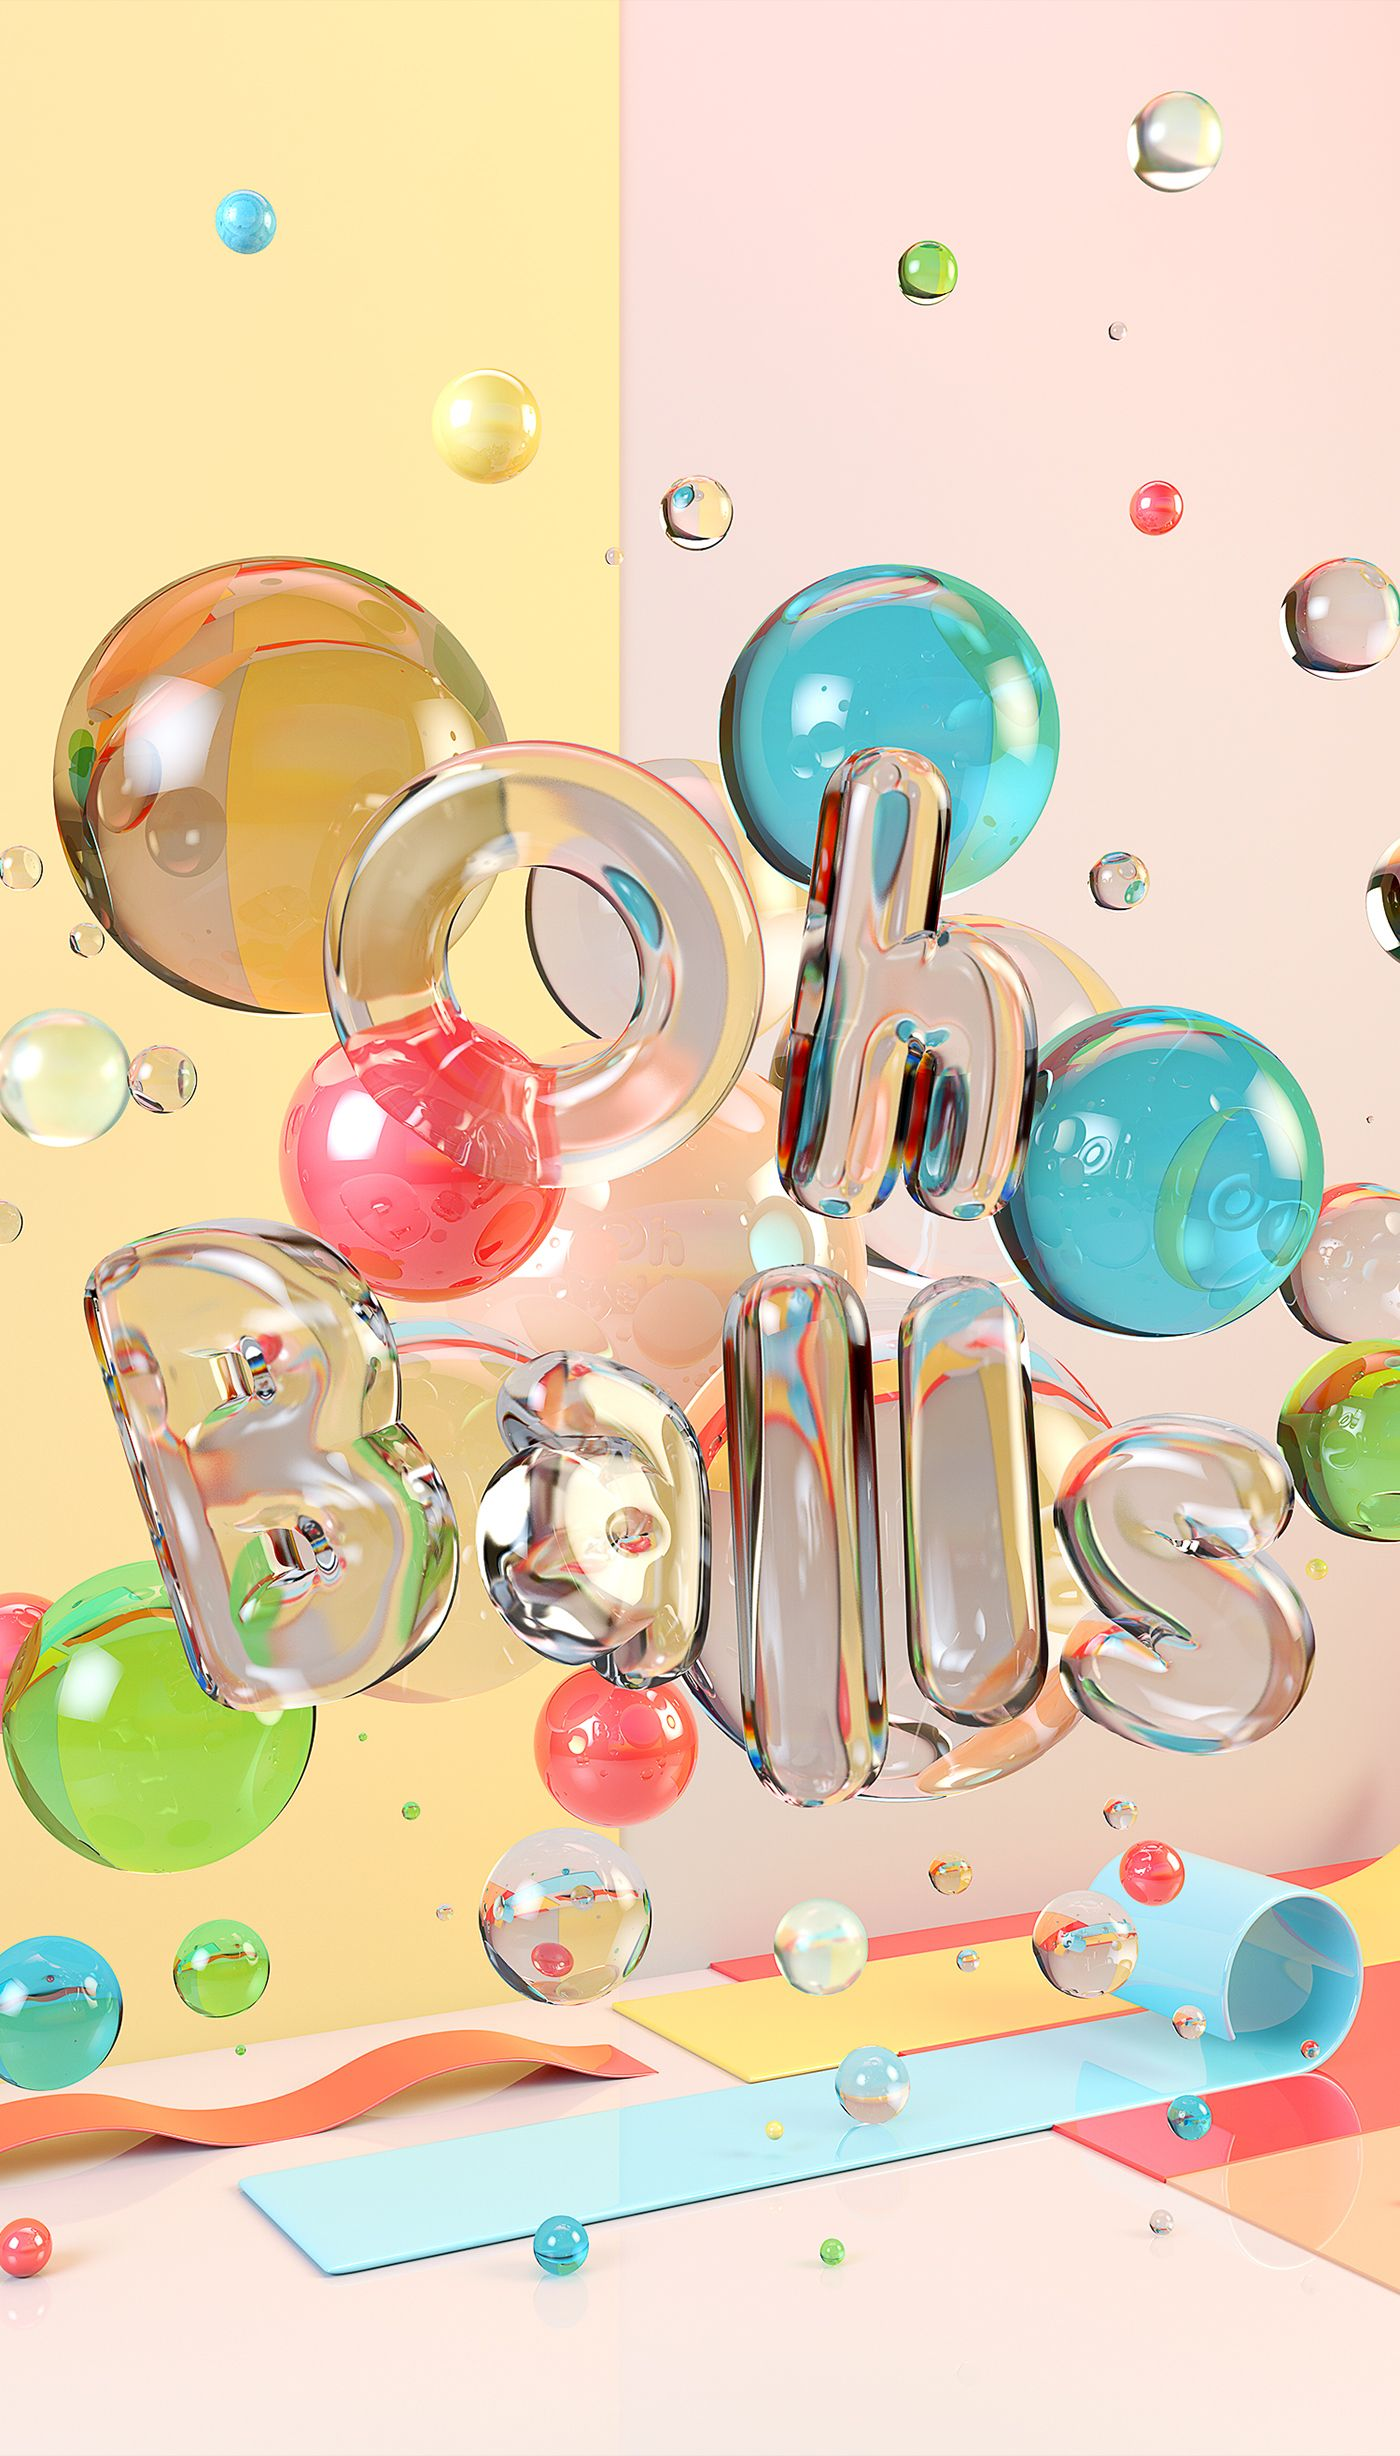 https://www.behance/gallery/30114151/cg-typography-oh-balls